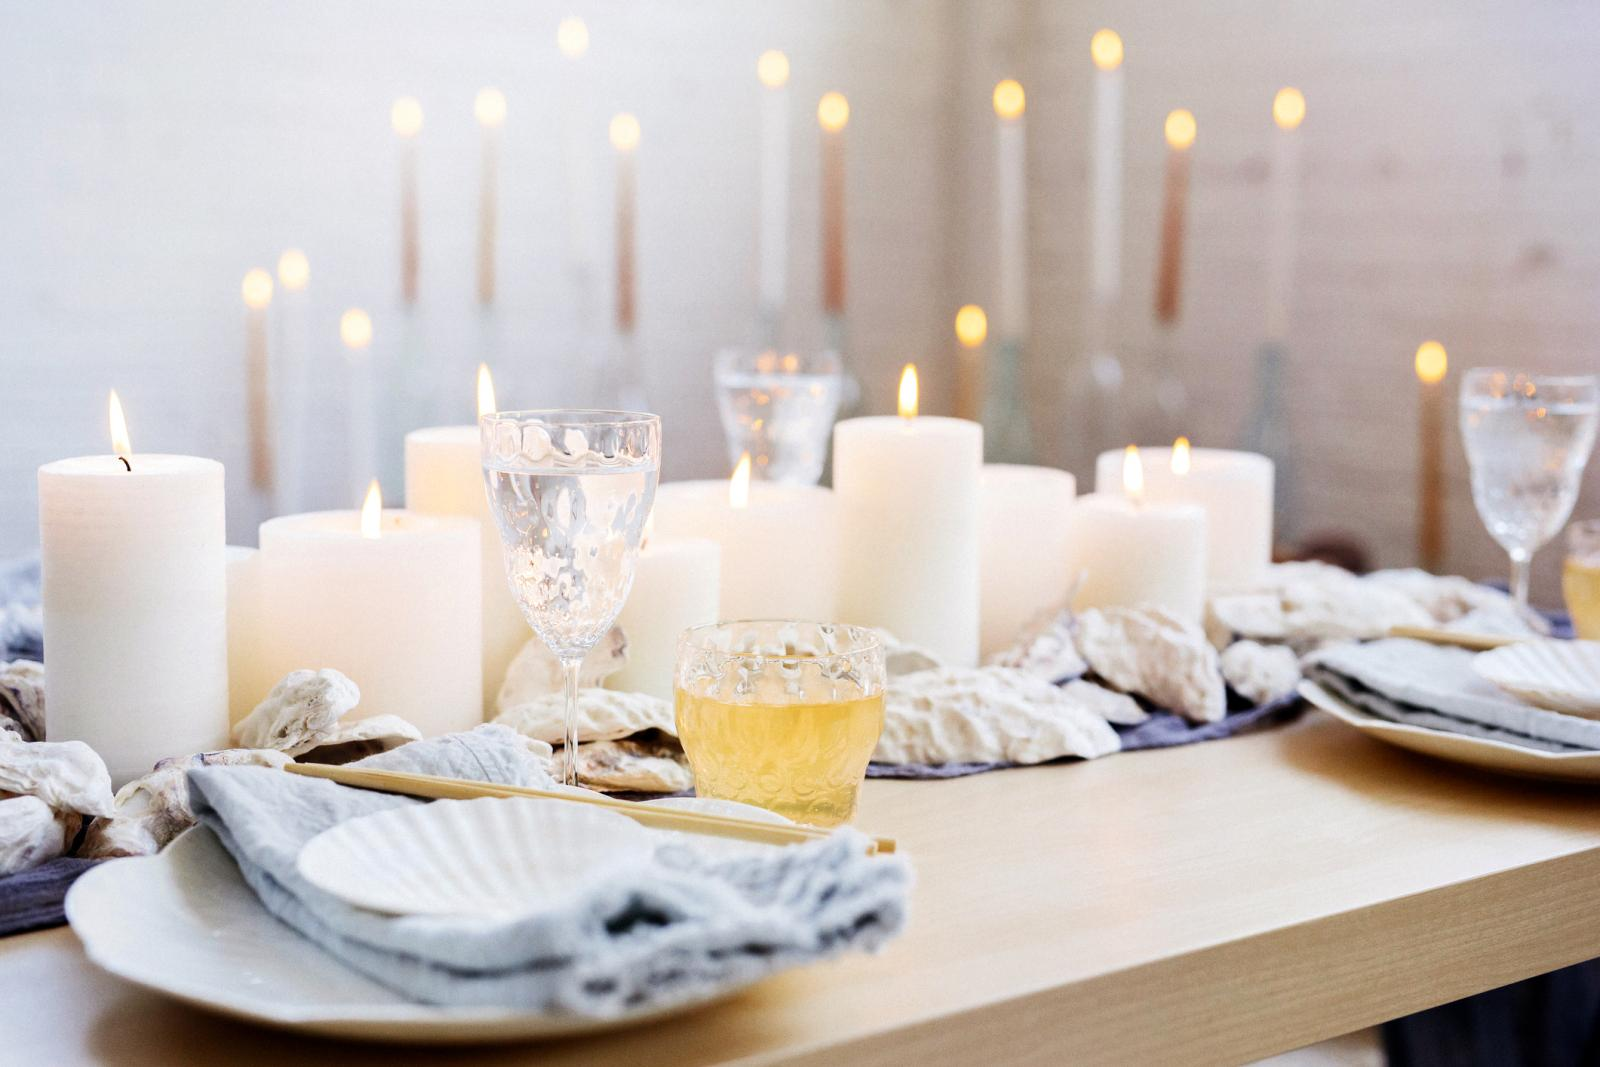 A table with lit candles, china plates and glasses